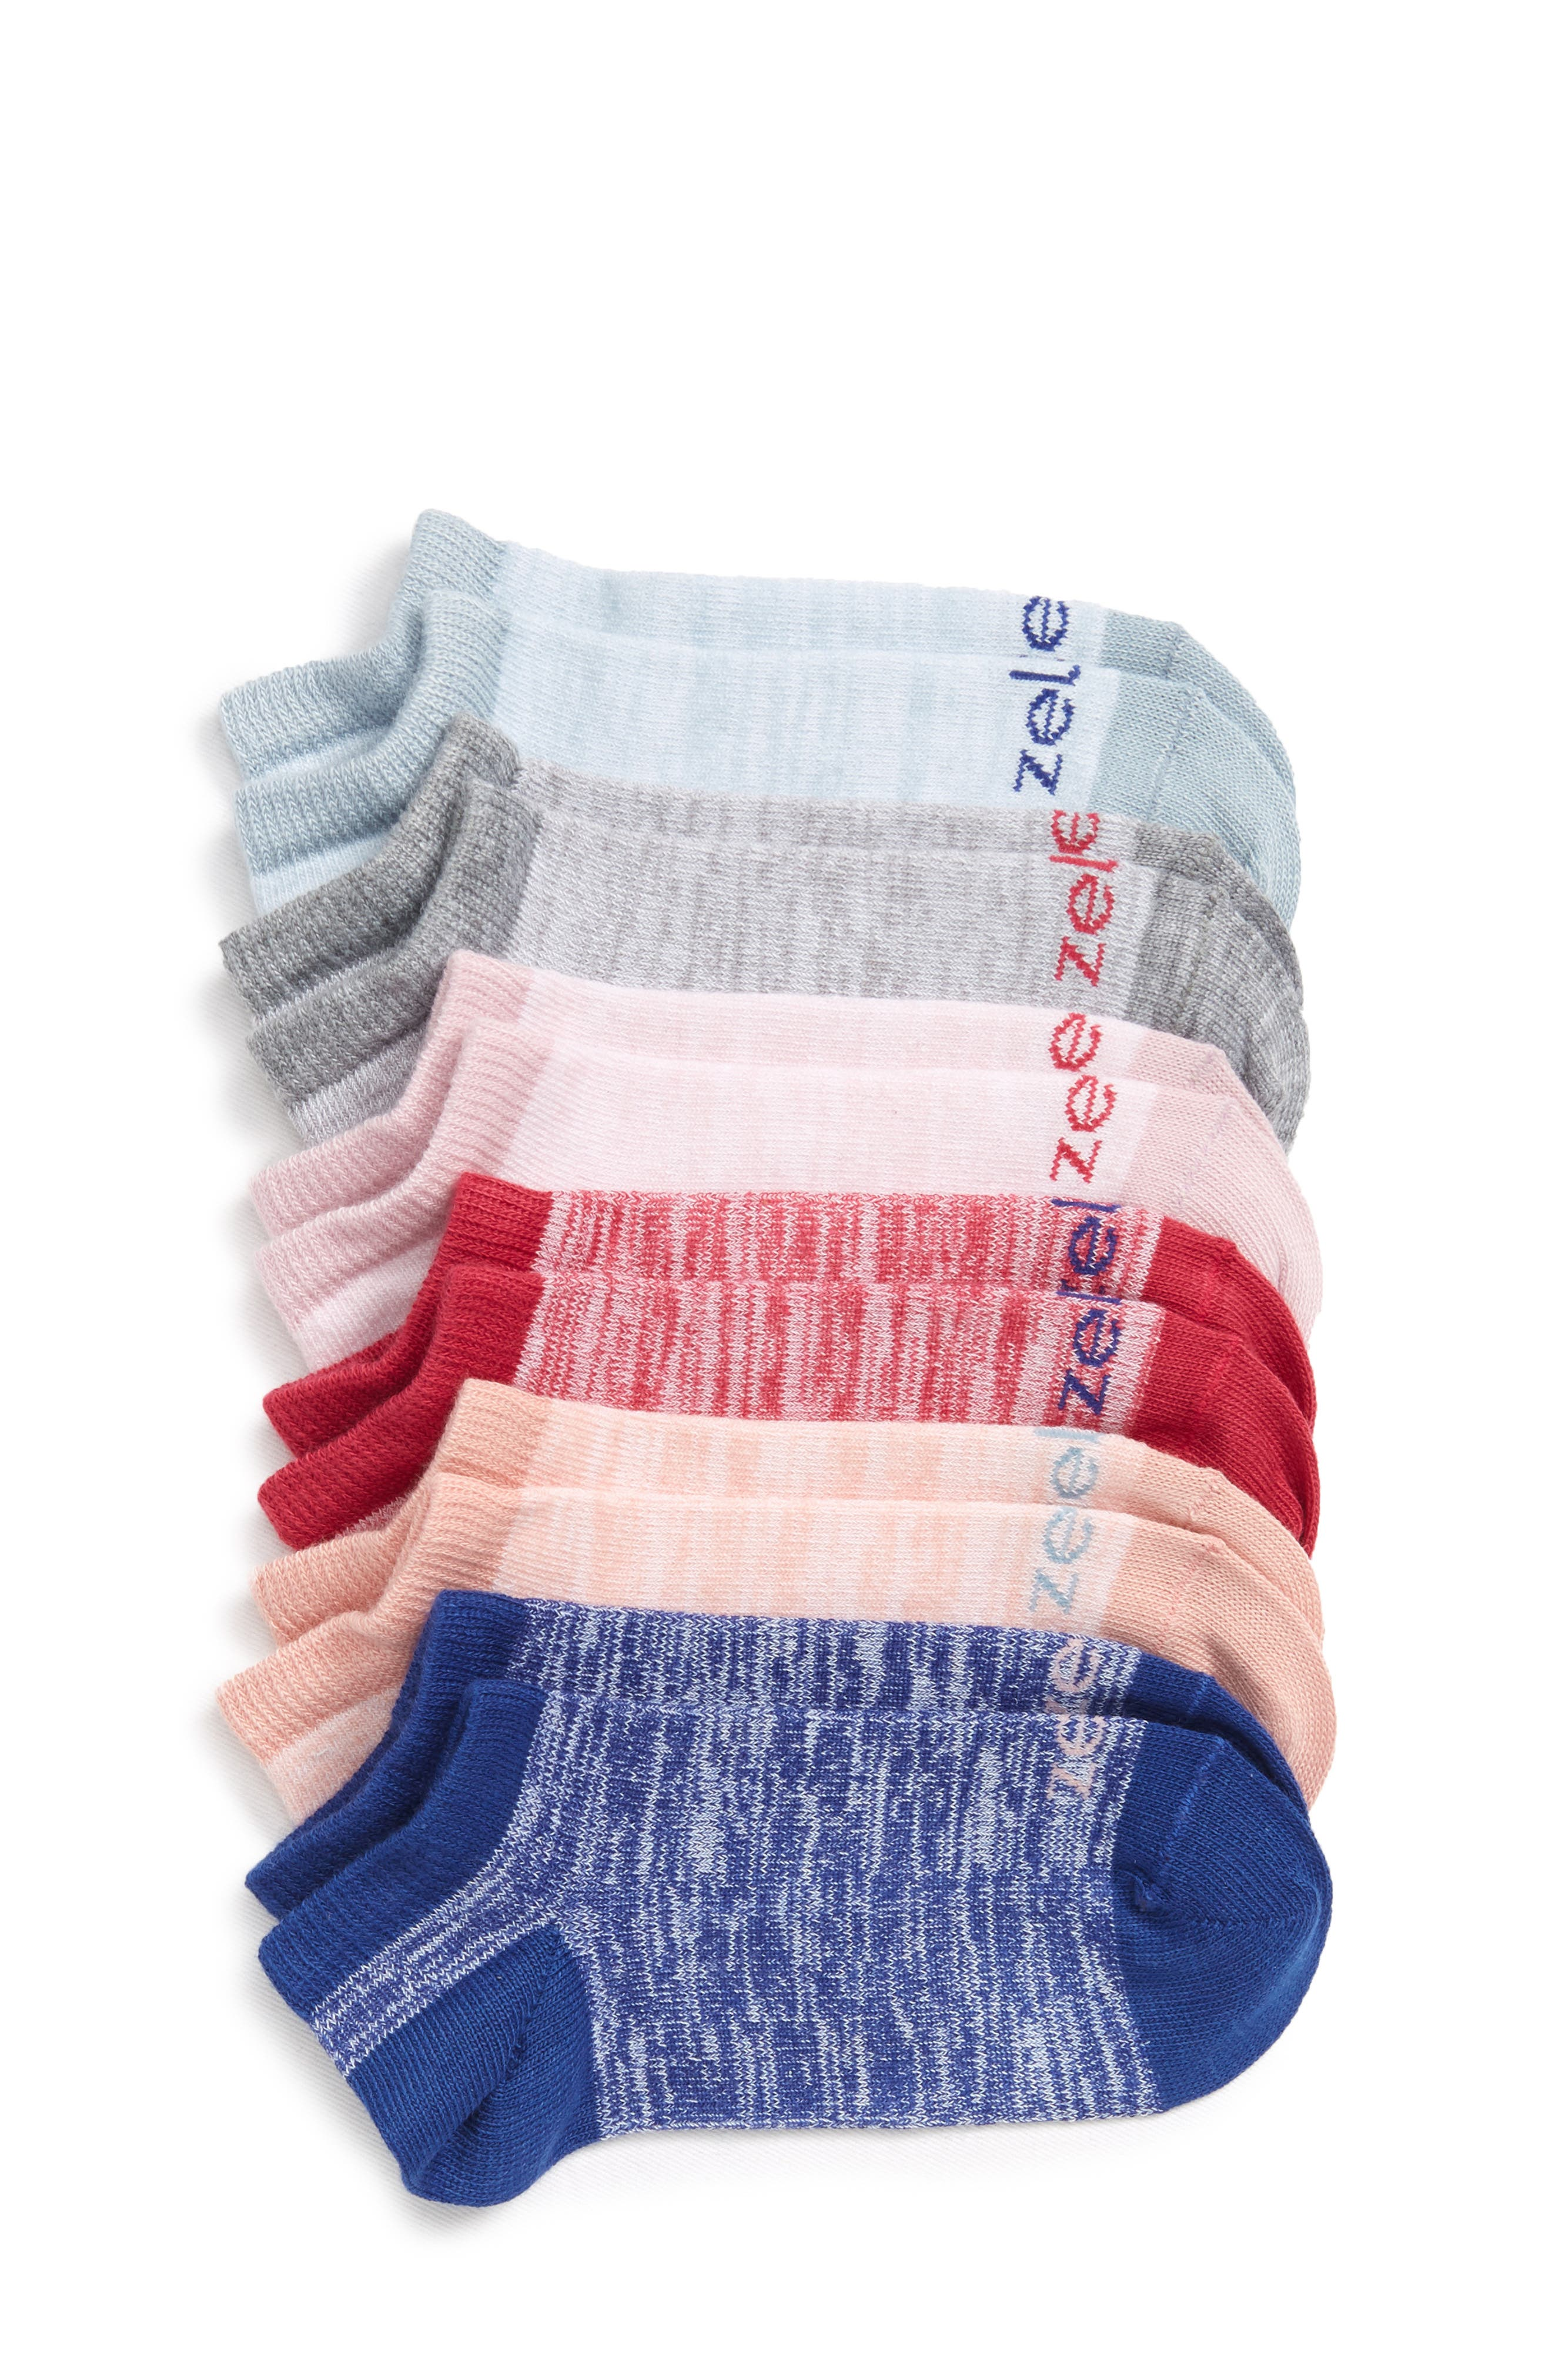 6-Pack Ankle Socks,                             Main thumbnail 1, color,                             502